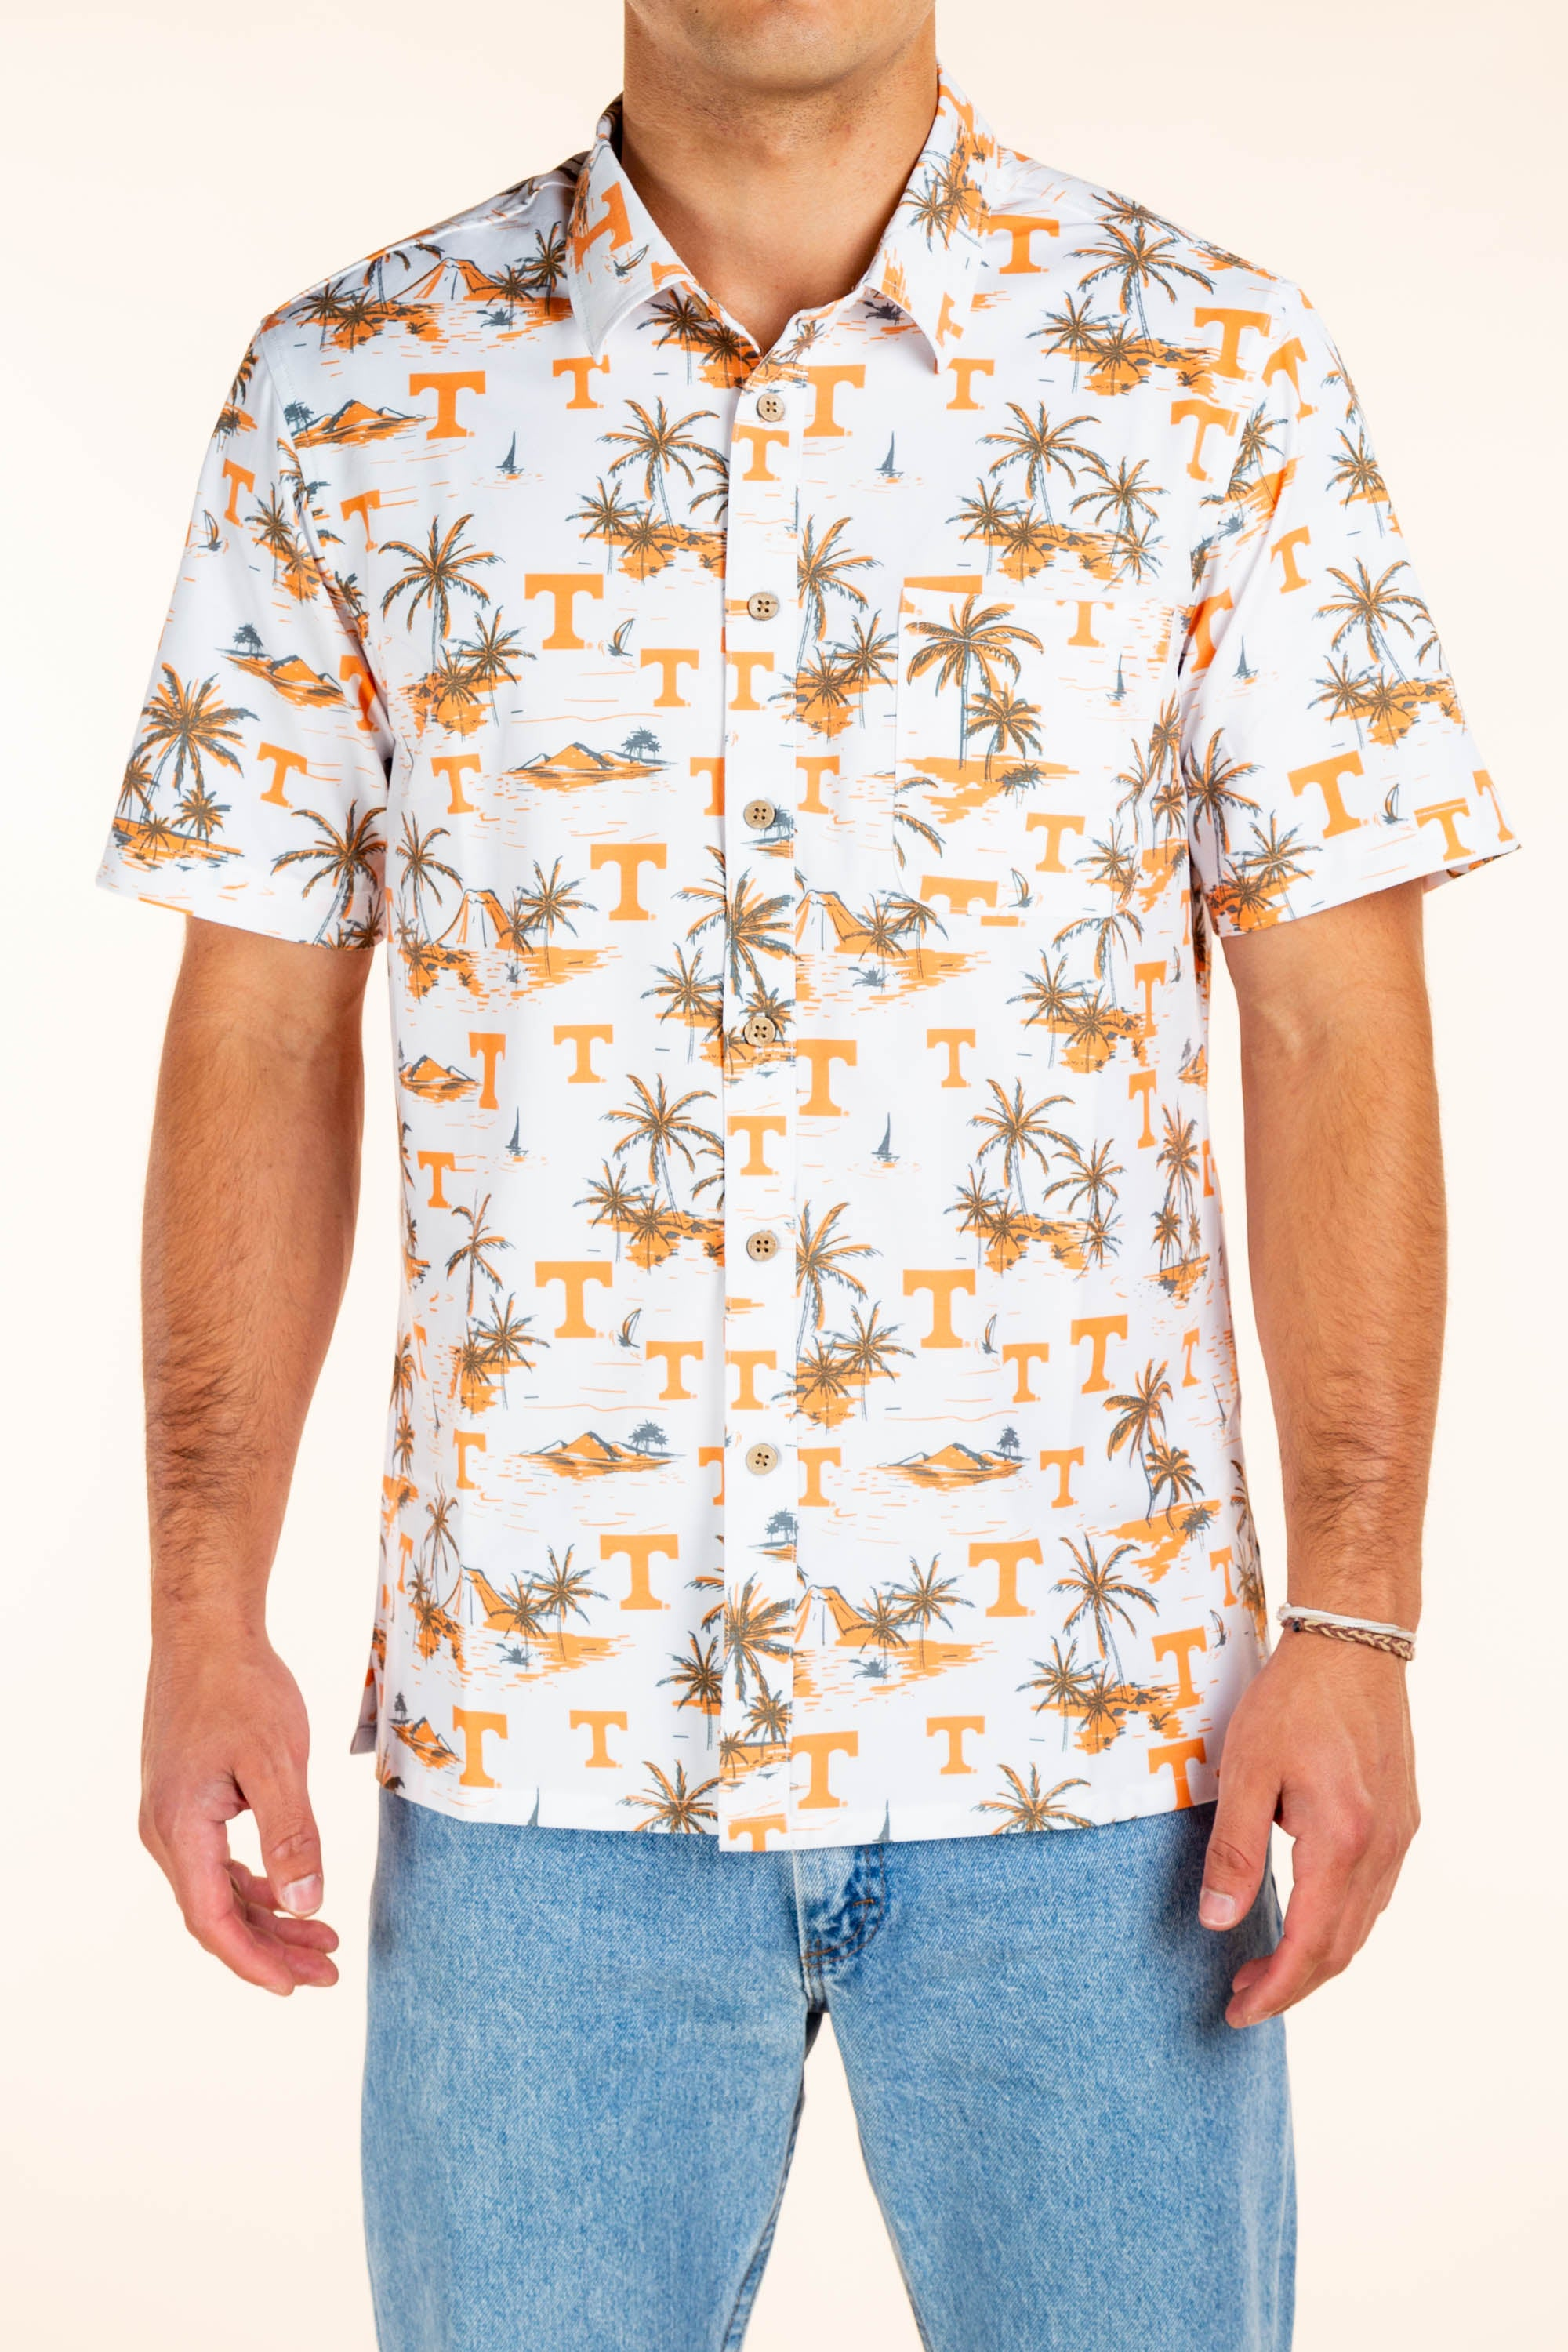 University of Tennessee Tailgating Button Up Shirt